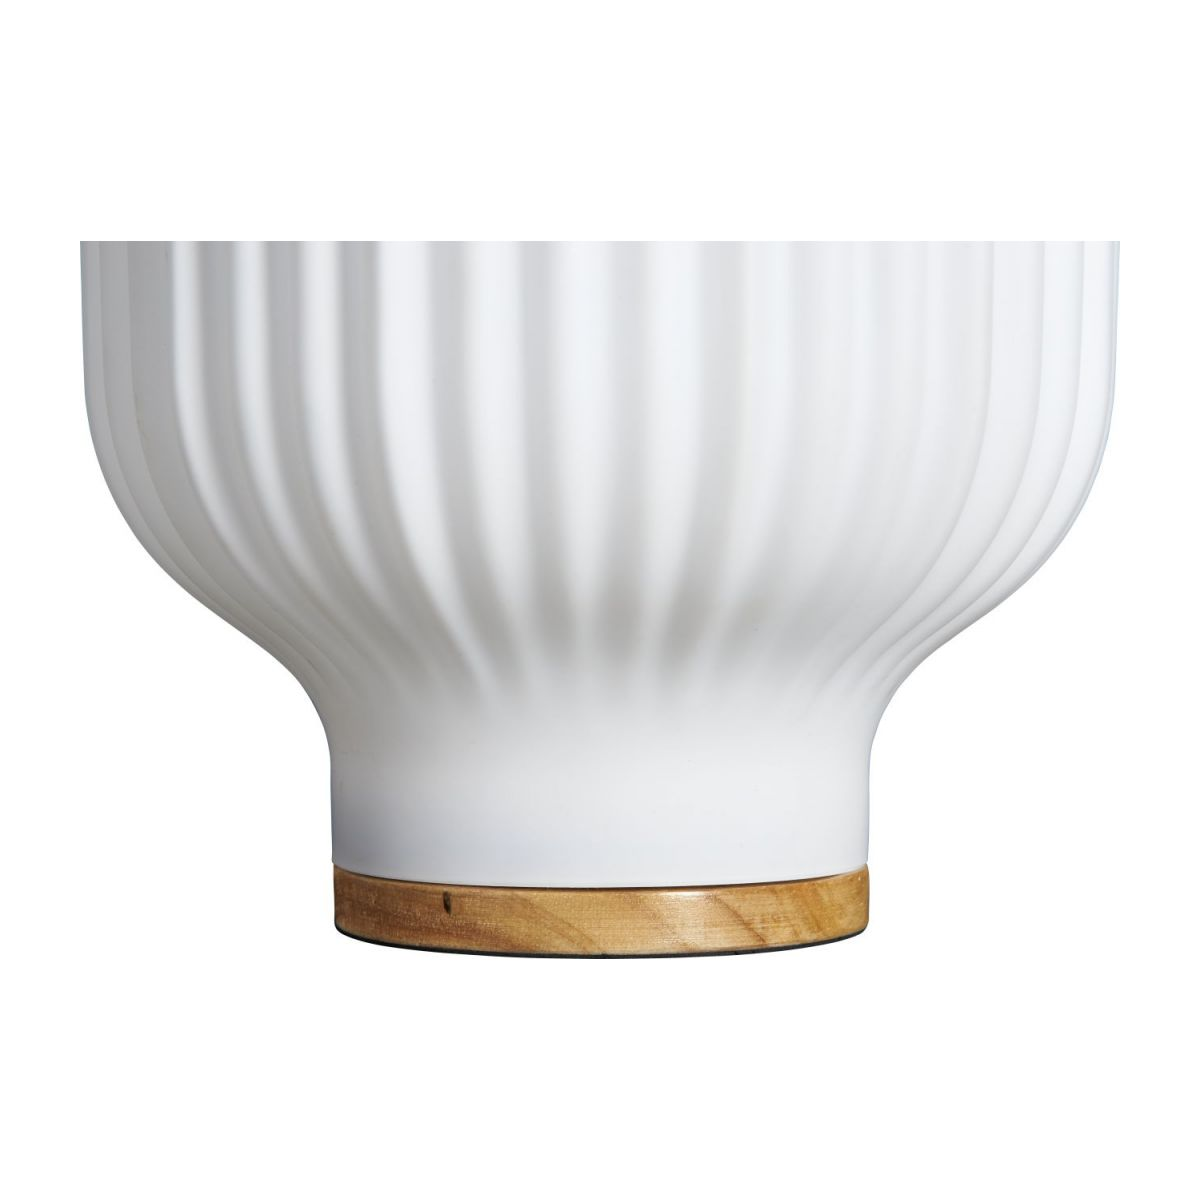 Lampe de table 19cm en verre blanc n°4